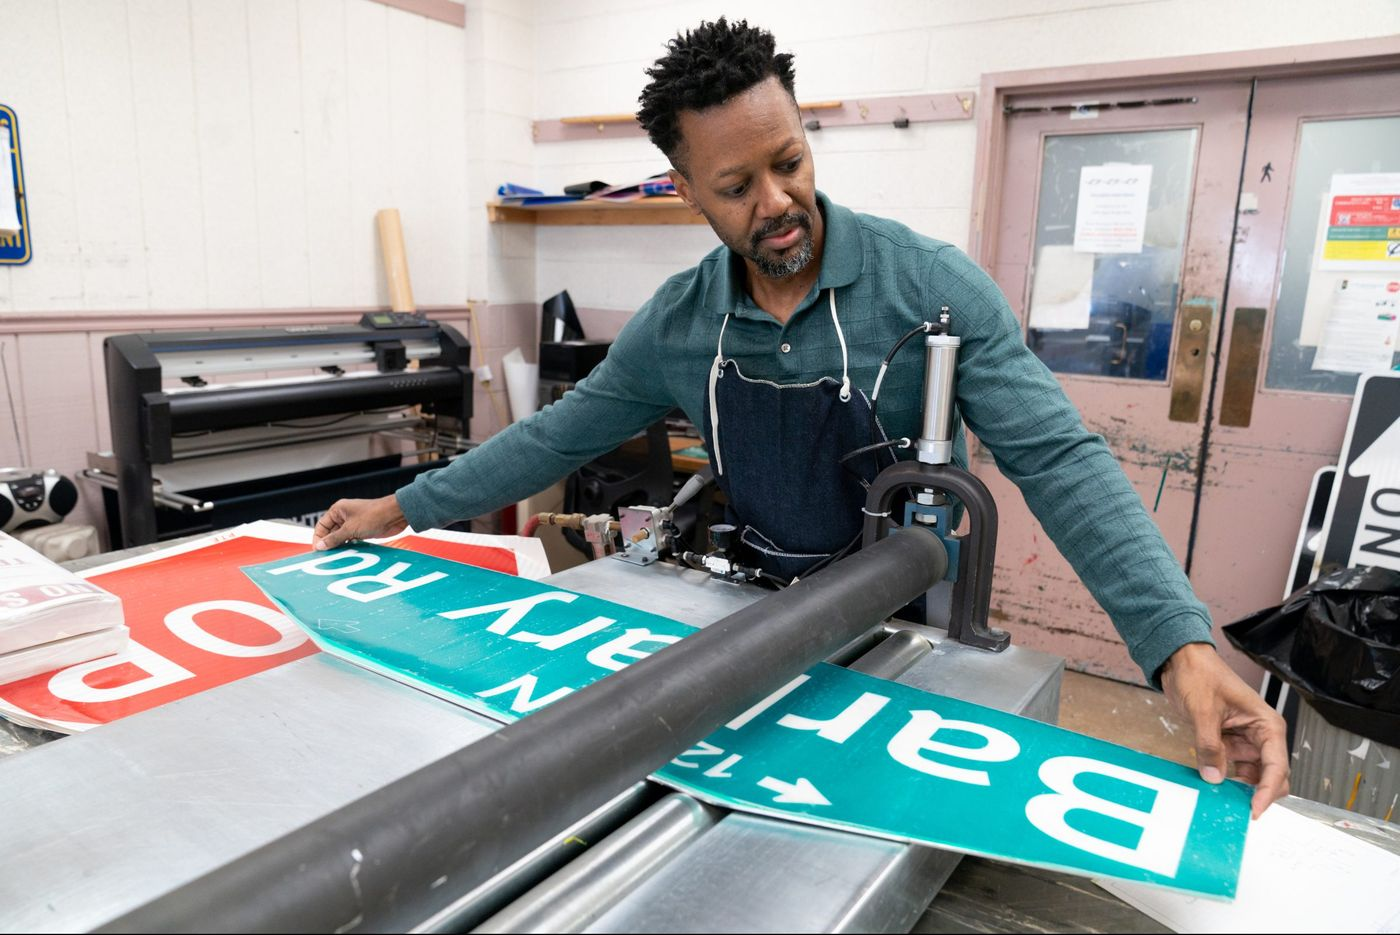 Three-Person Workshop Responsible for More Than 100,000 Street Signs in Philadelphia